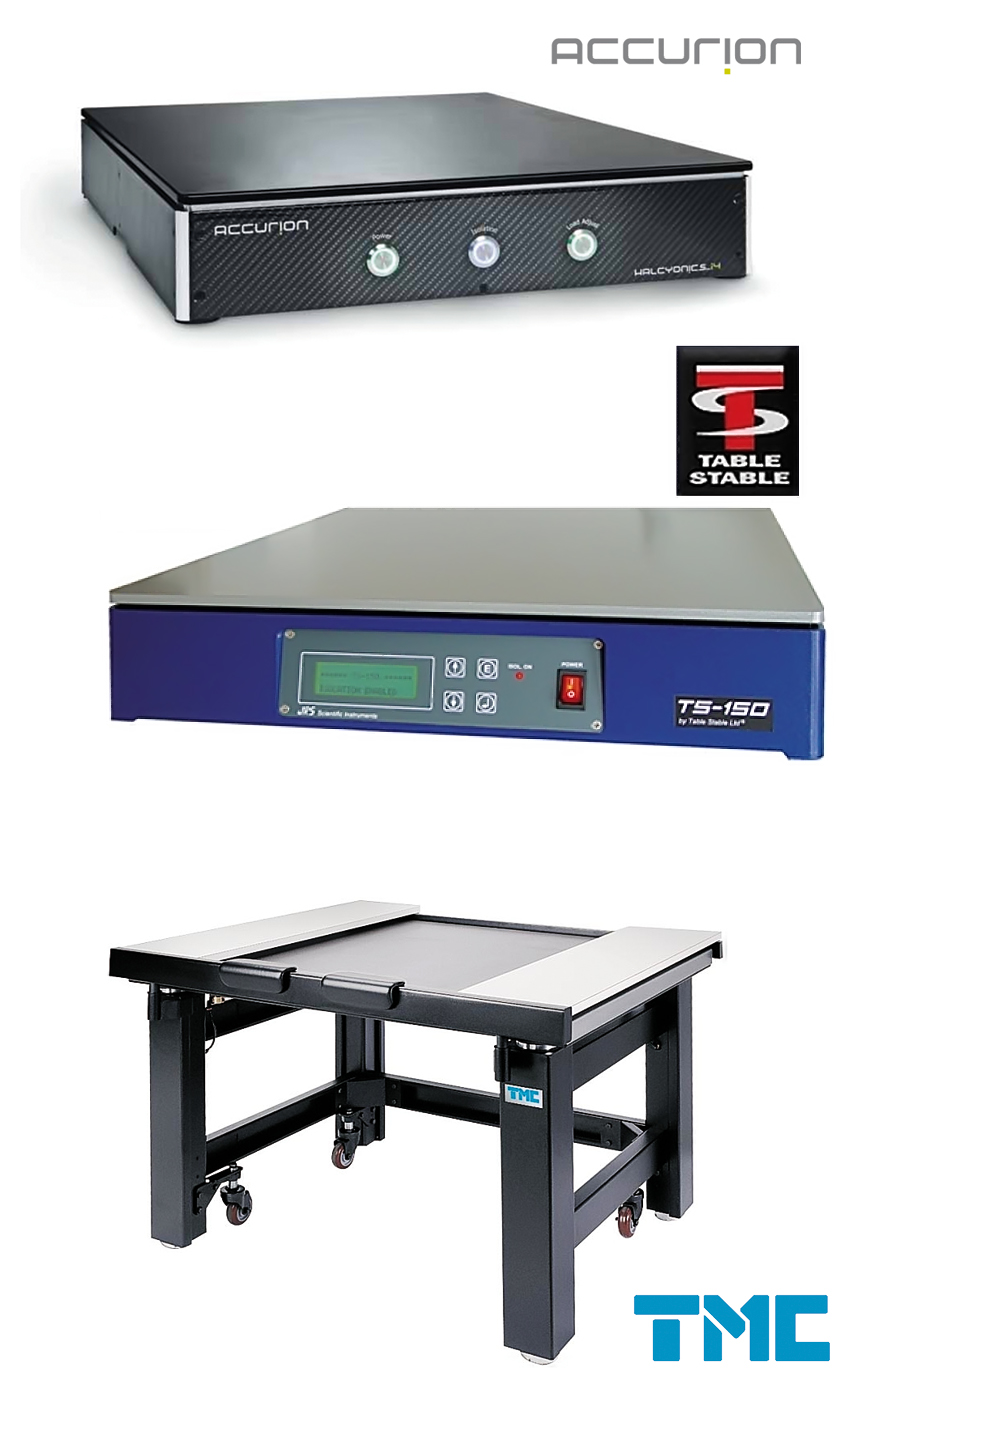 Vibration Isolation Systems